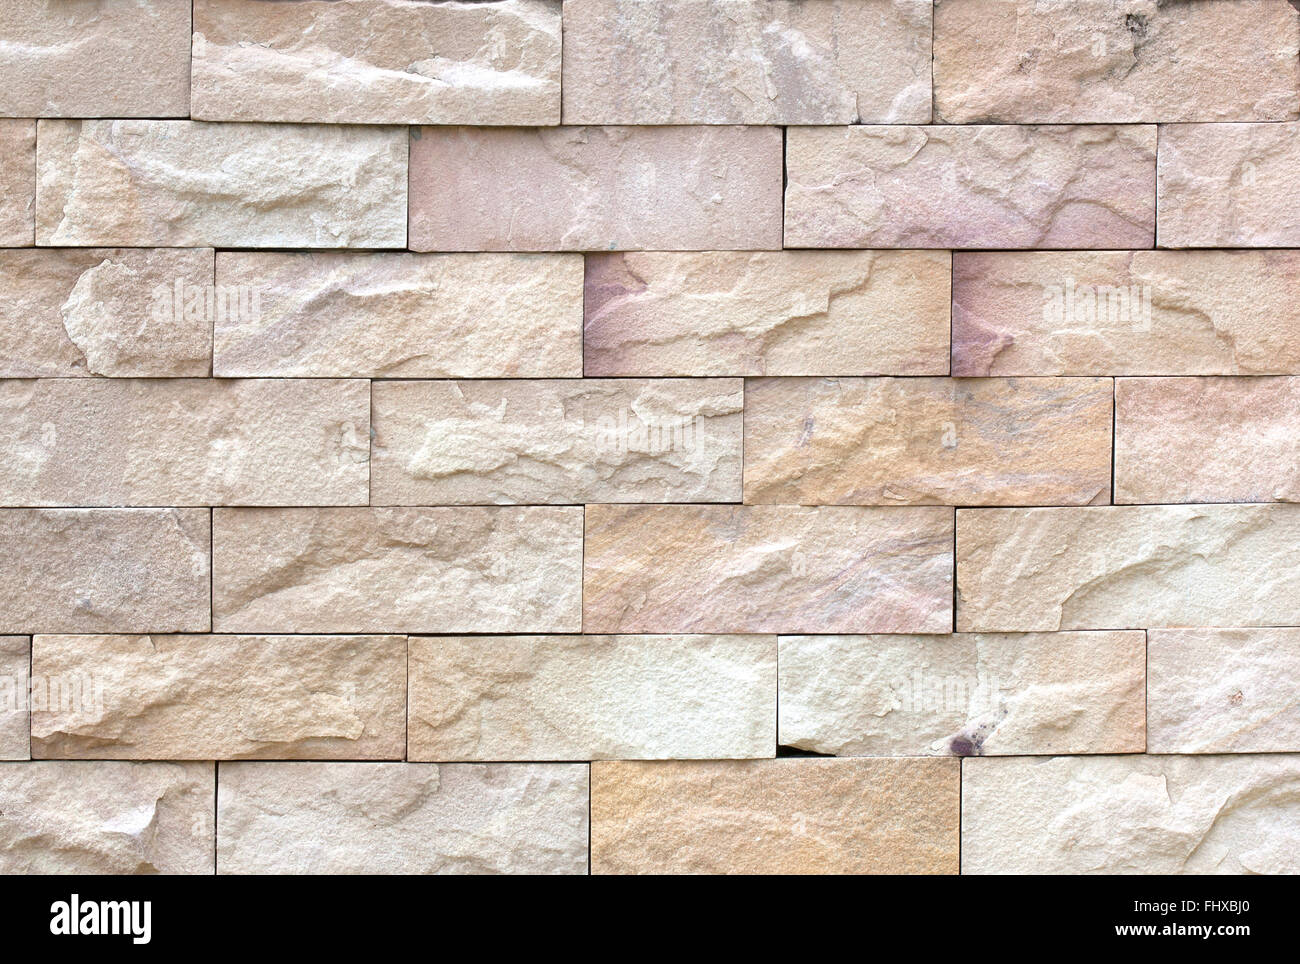 texture of stone walls exterior durability construction